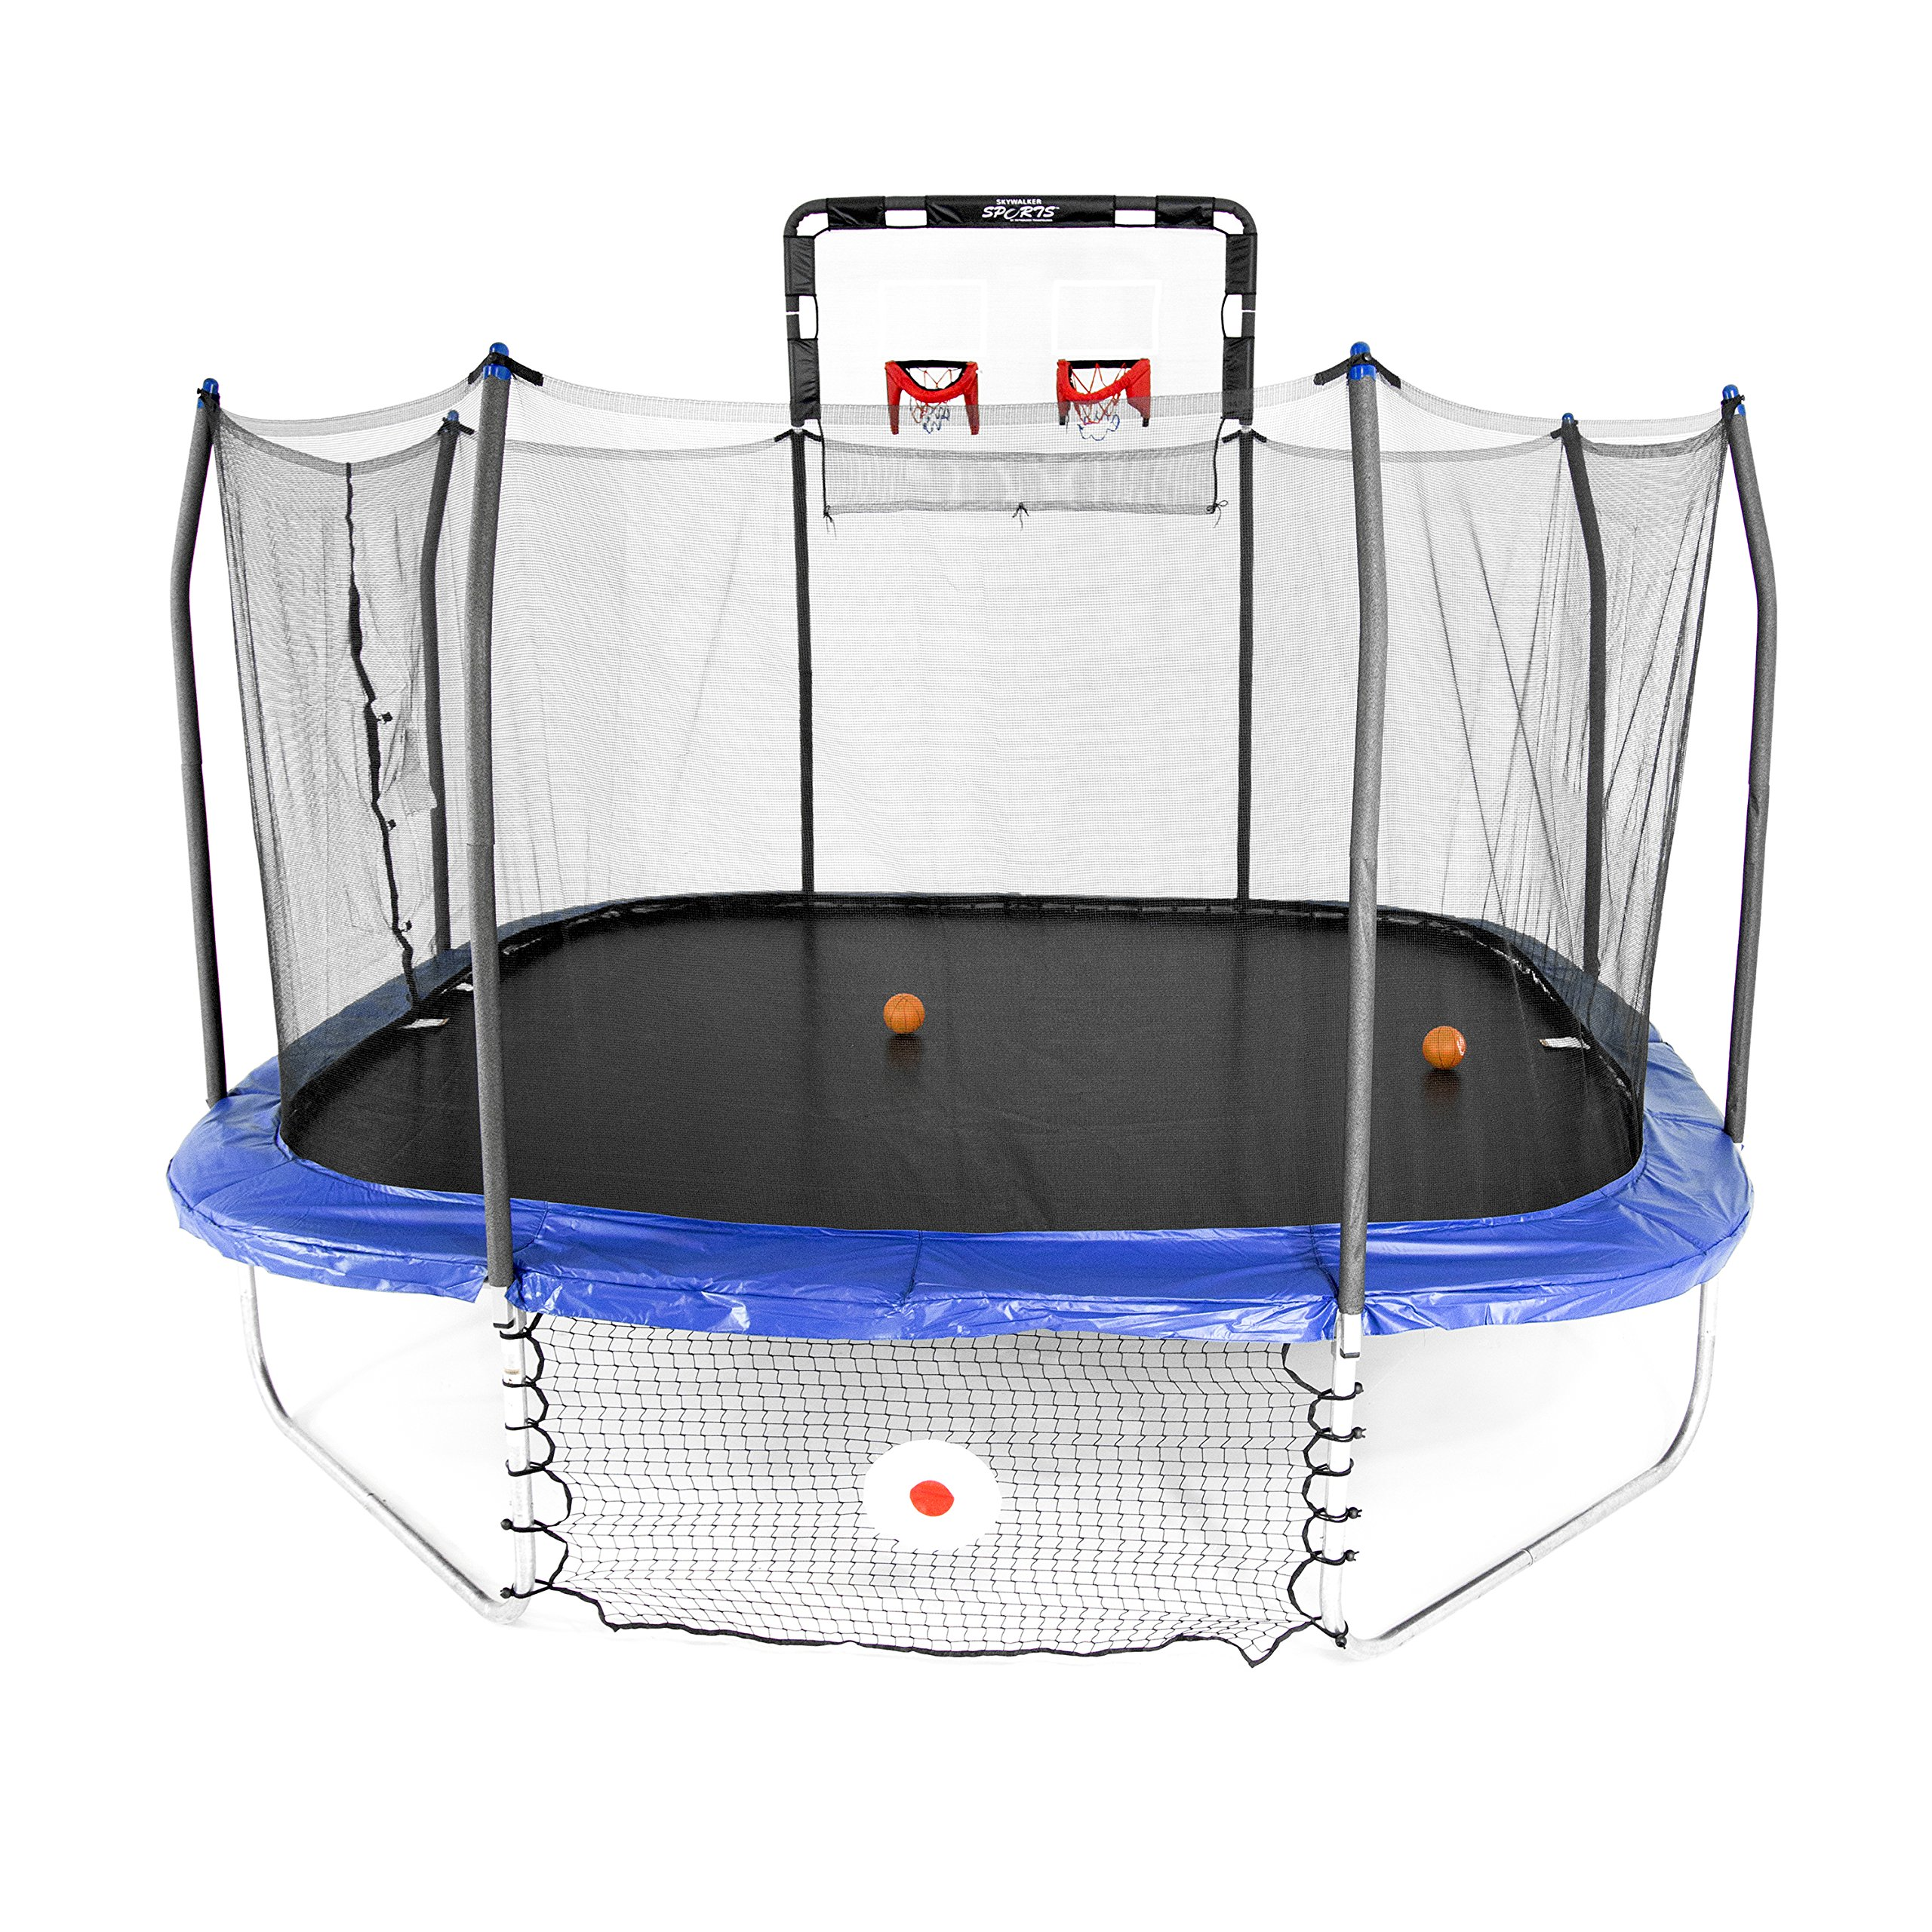 Skywalker Trampolines 14-Foot Square Trampoline with Enclosure - Soccer and Basketball Trampoline by Skywalker Trampolines